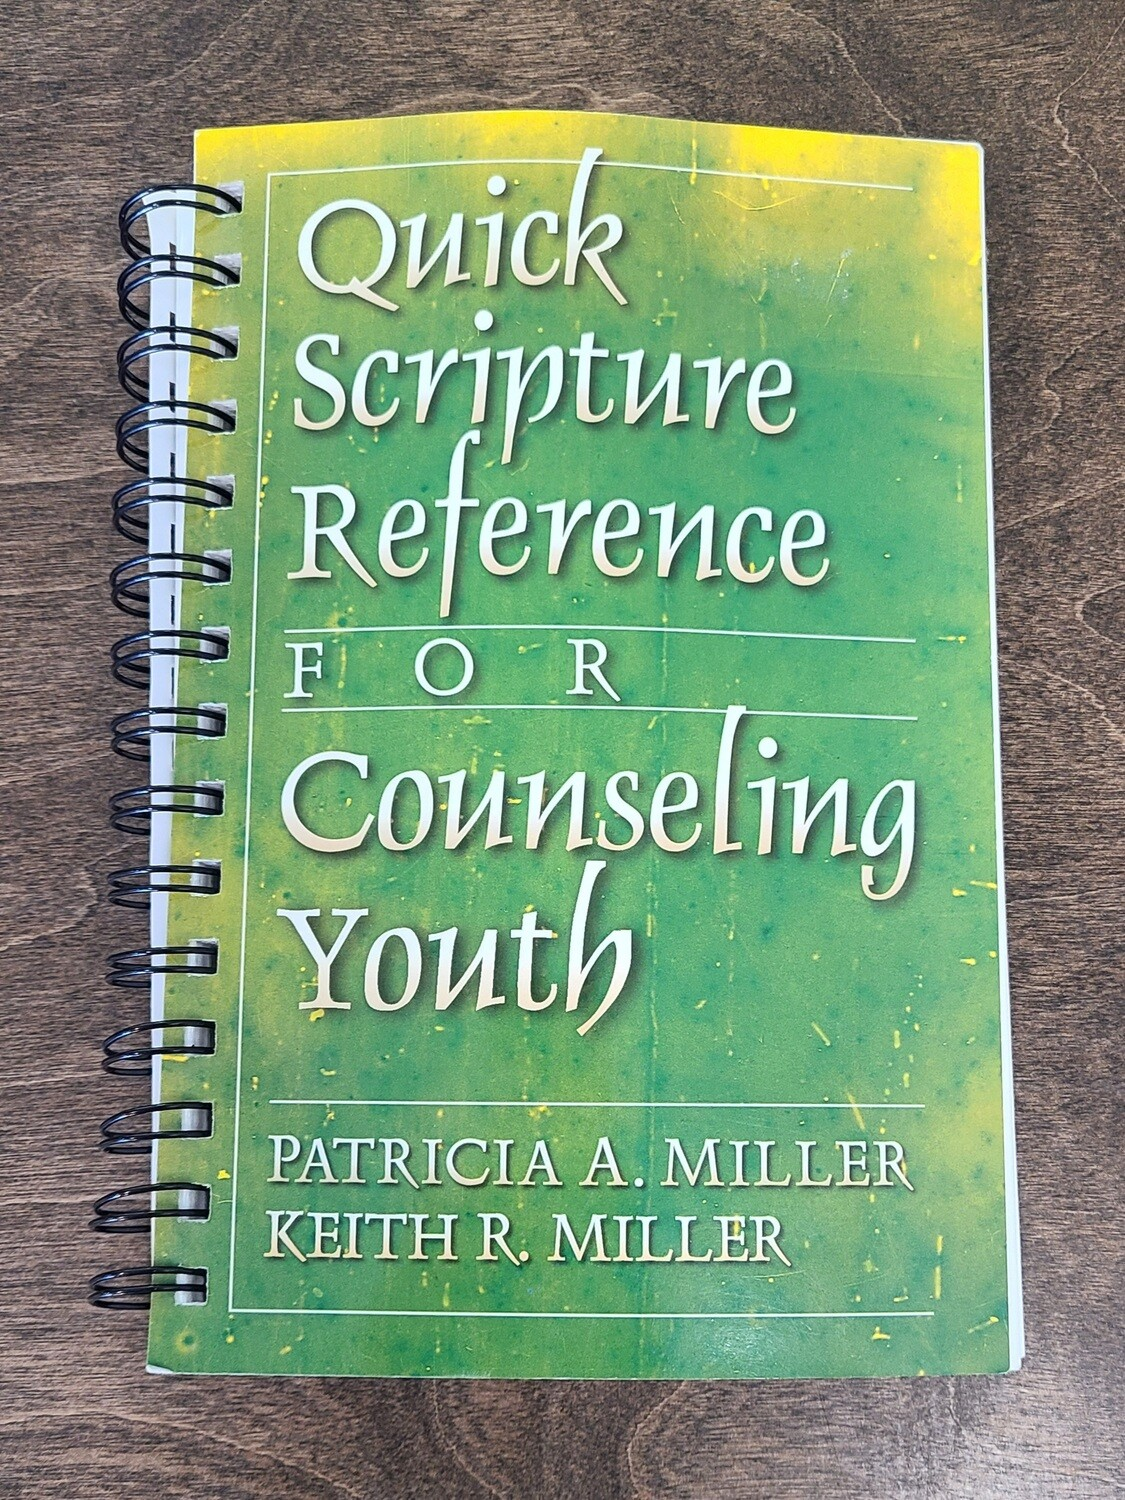 Quick Scripture Reference for Counseling Youth by Patricia A. Miller and Keith R. Miller